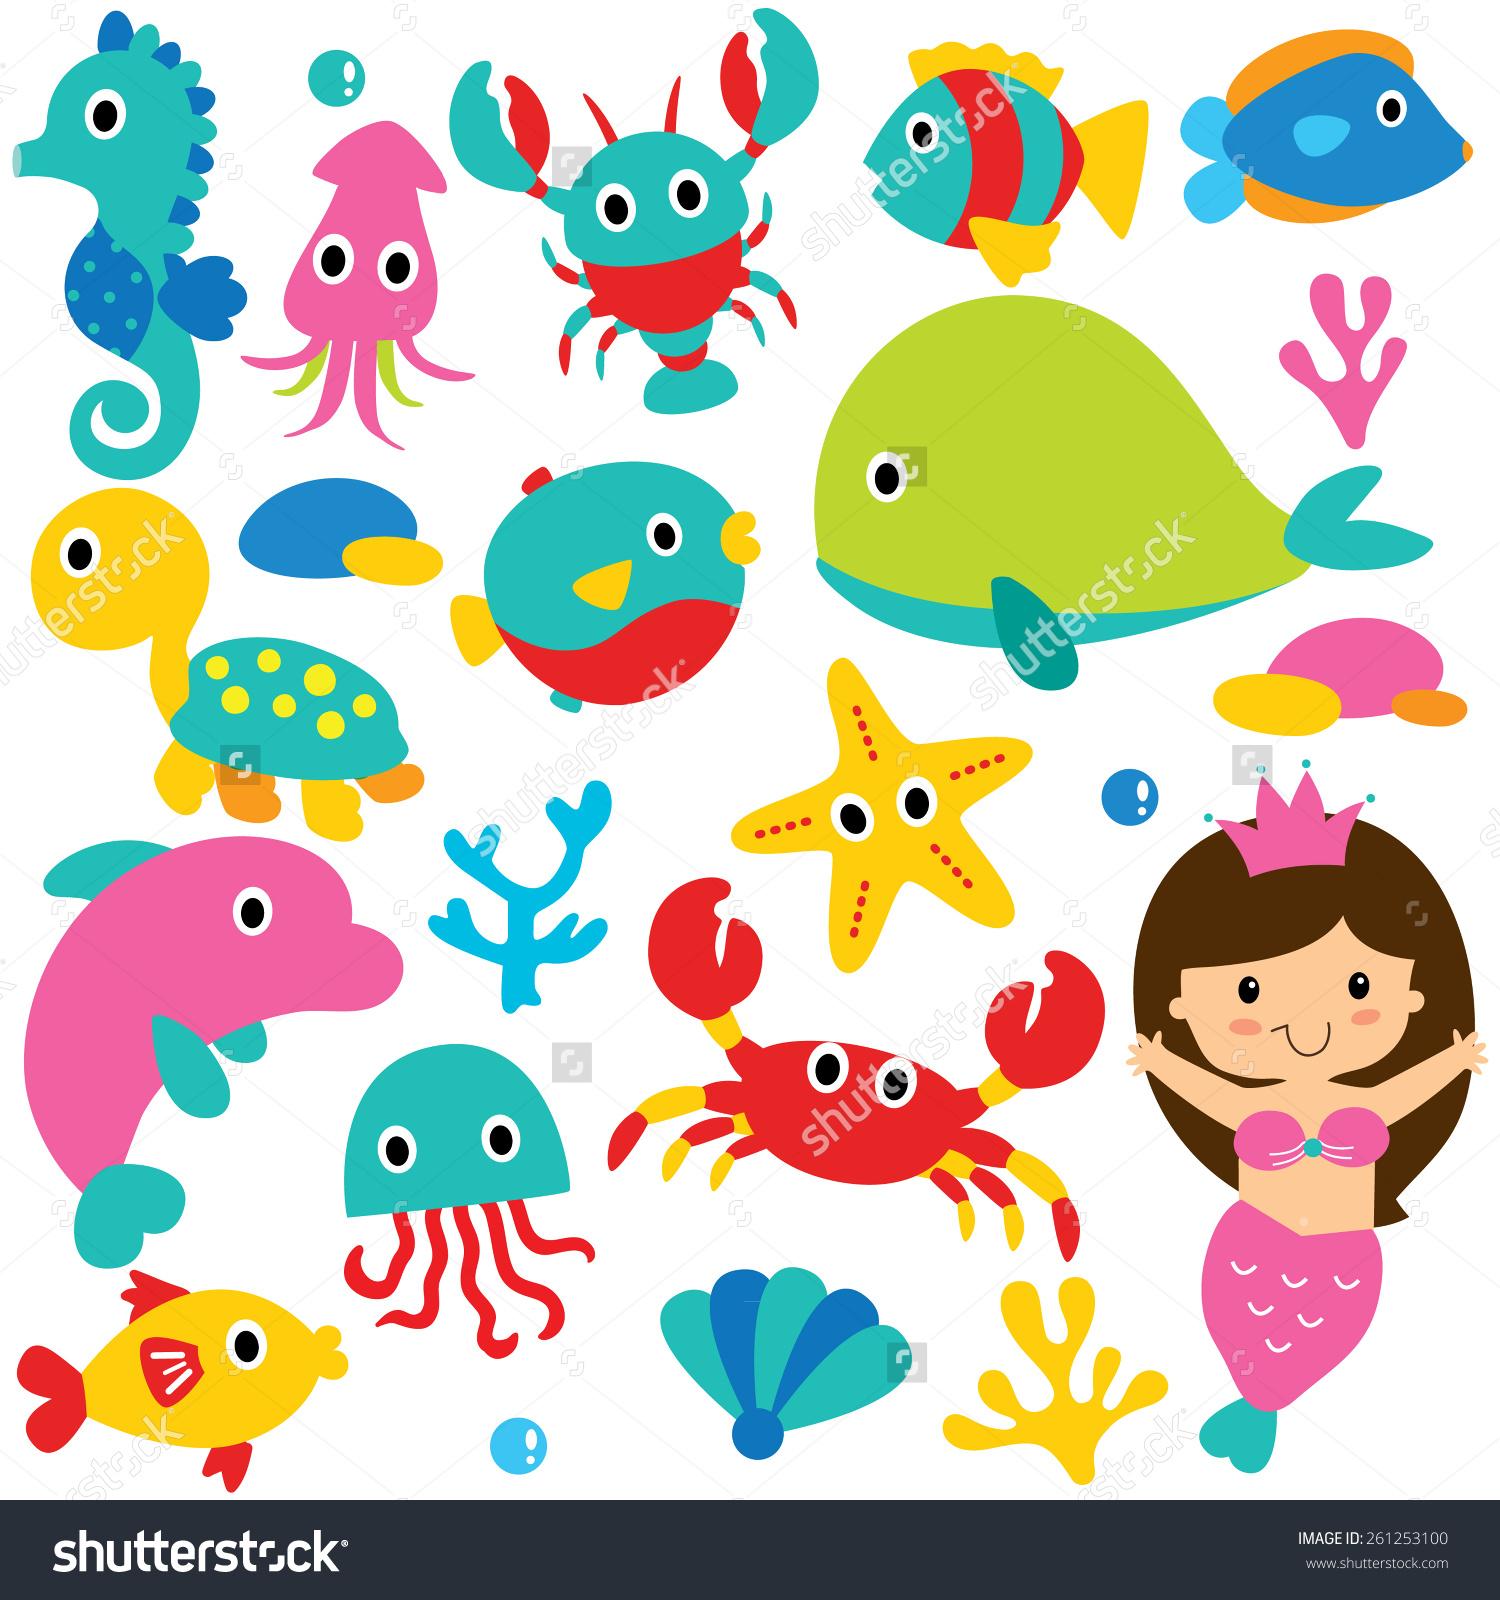 Clipart Sea Animals. Save to a lightbox